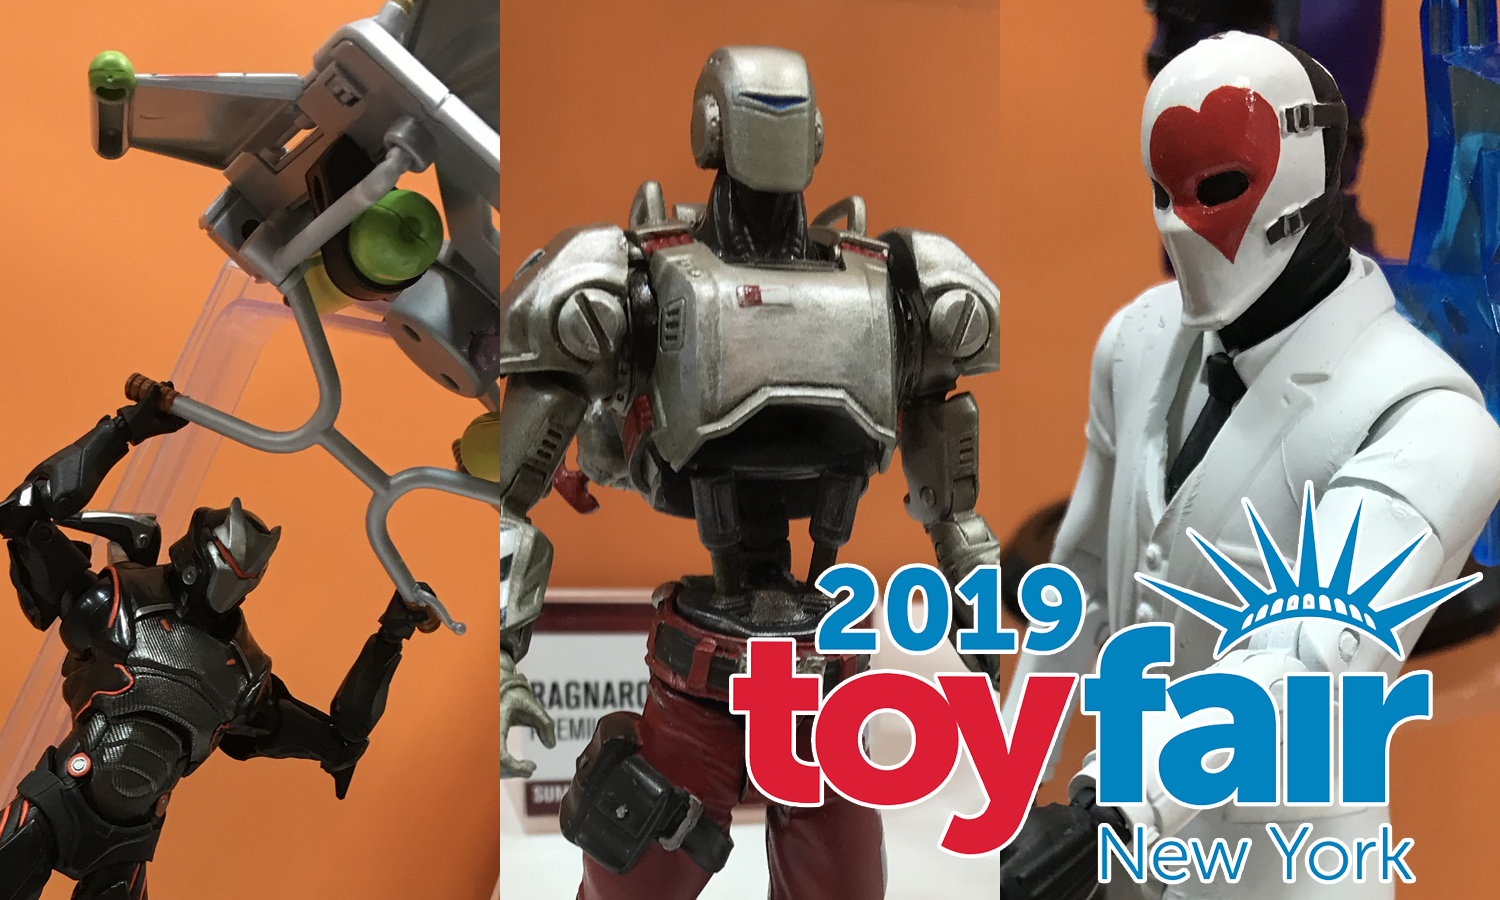 Toy Fair 2019: McFarlane Toys Tricks Out Fortnite With Vehicles, Gliders, and More